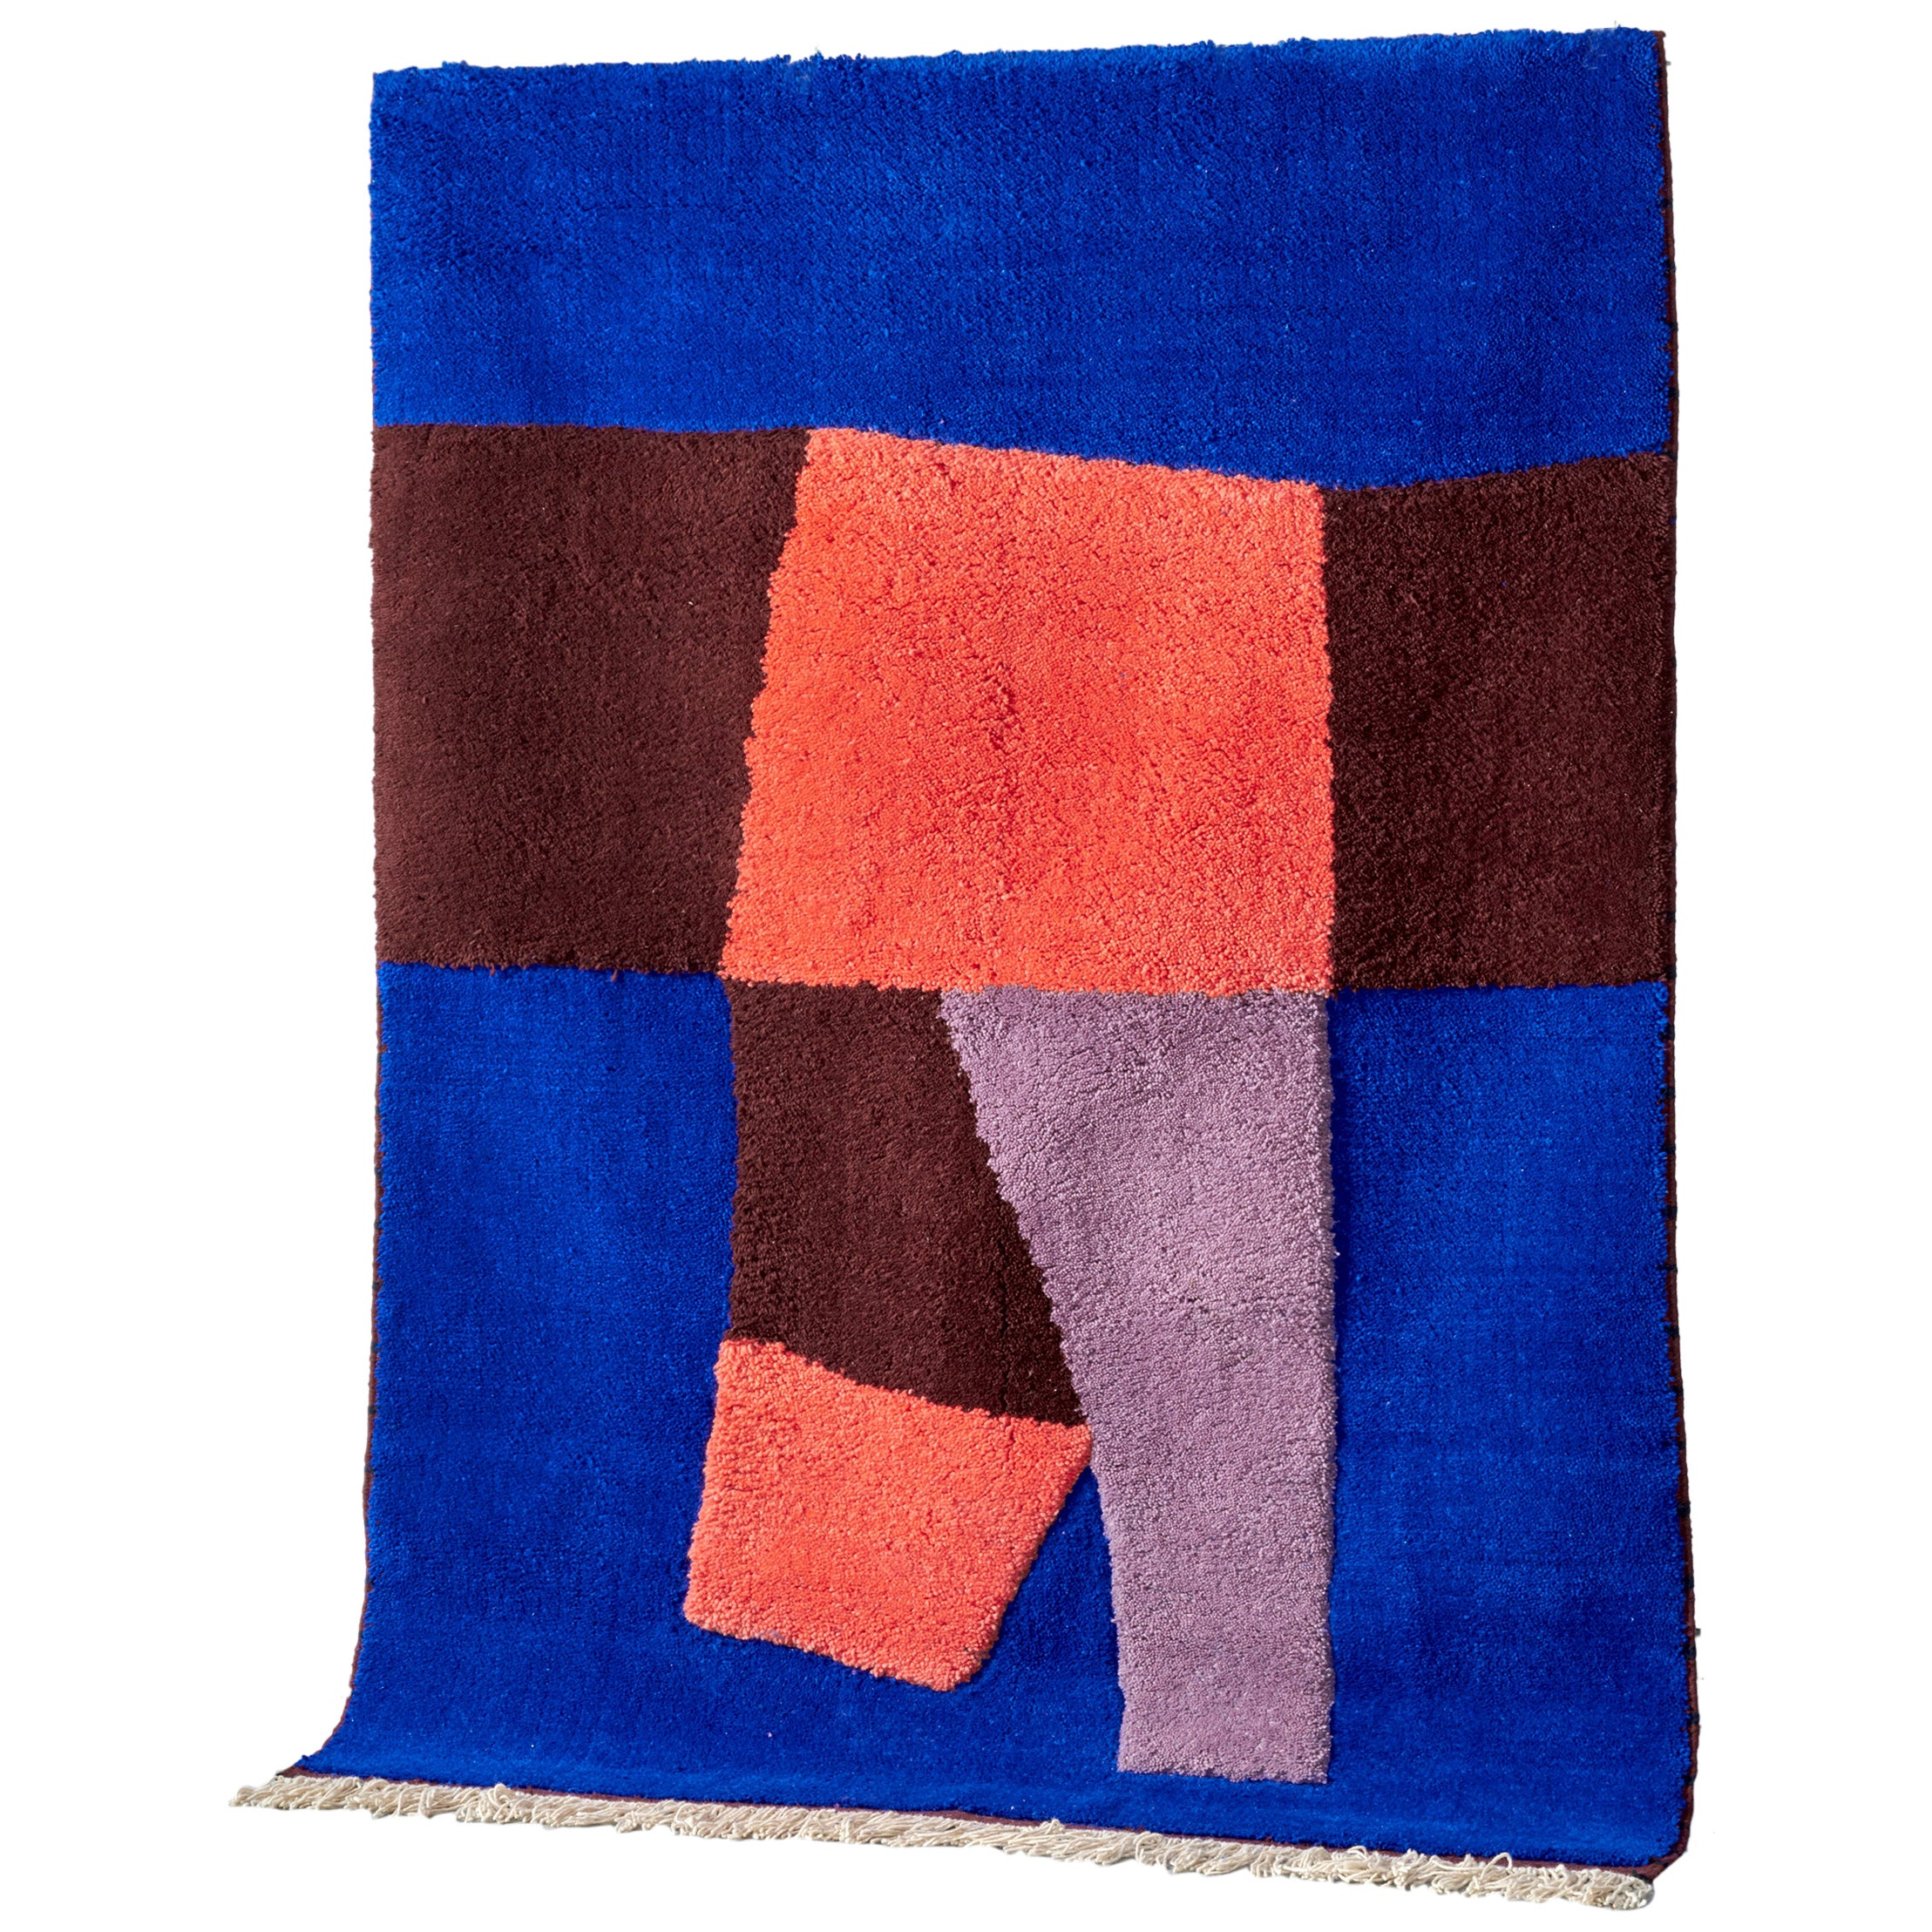 Moroccan Hand Knotted Wool Rug by Maria Jeglinska, 6 x 9ft